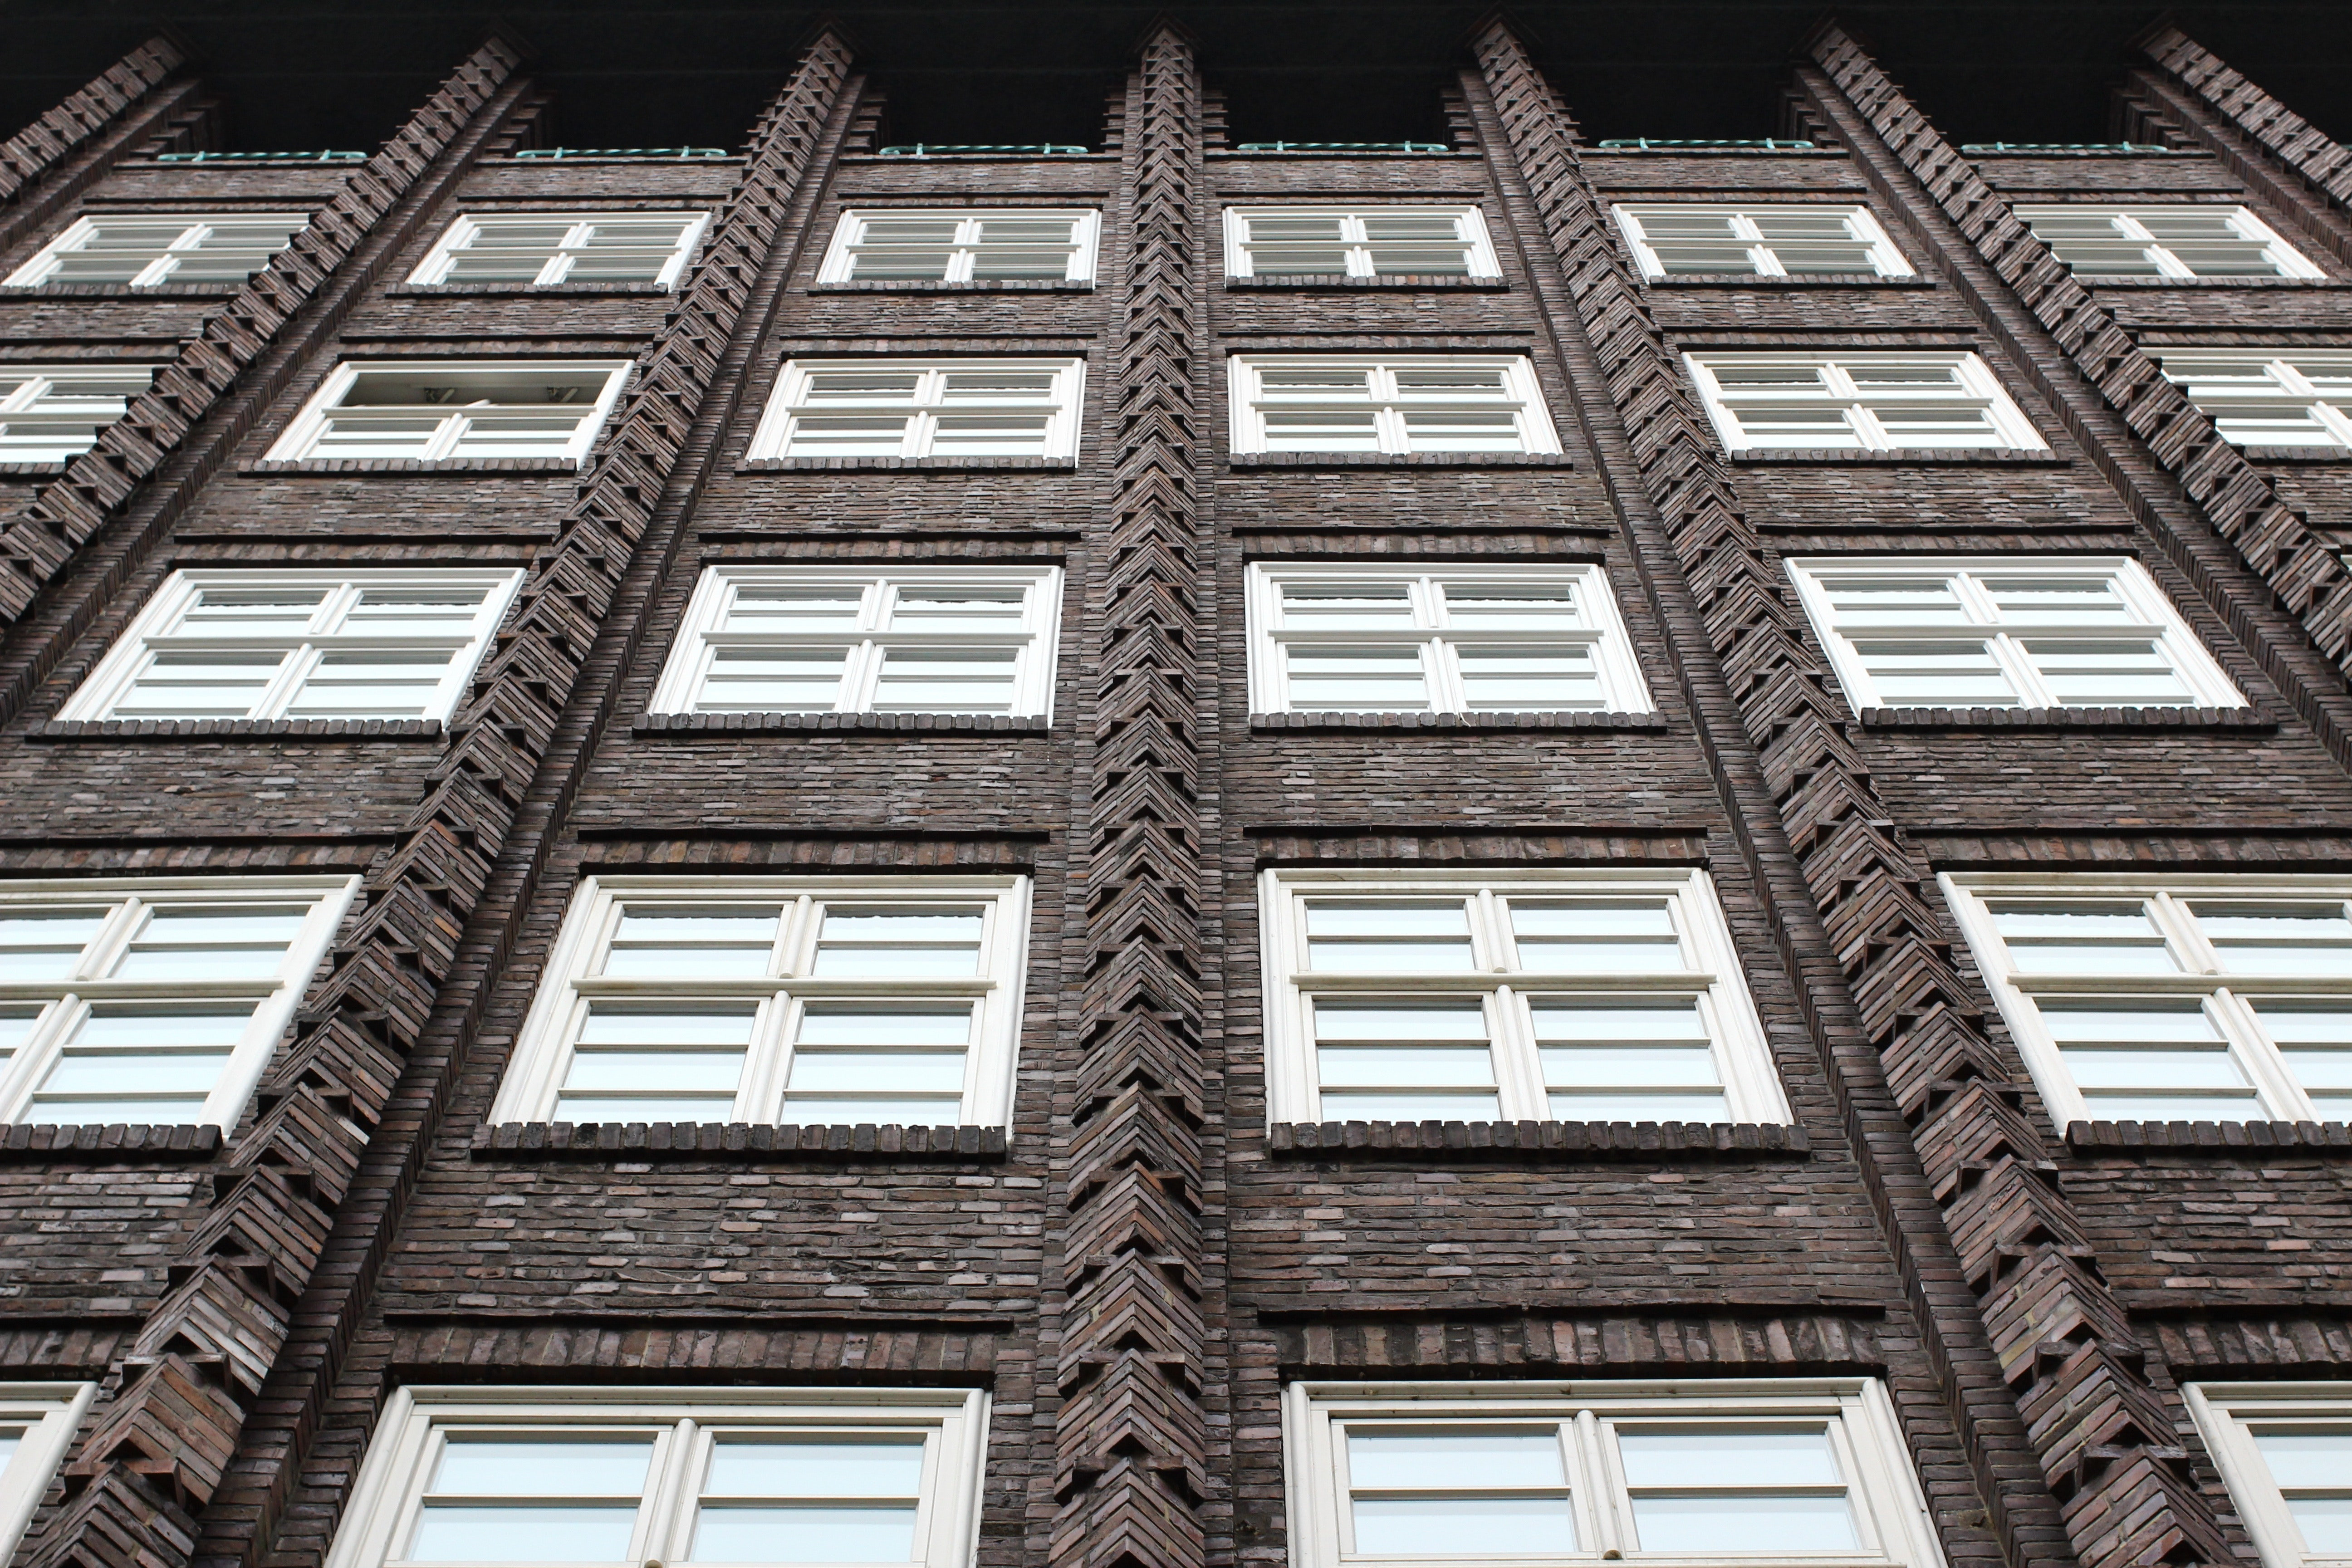 White Gray and White Building, Architecture, Building, Low angle shot, Perspective, HQ Photo